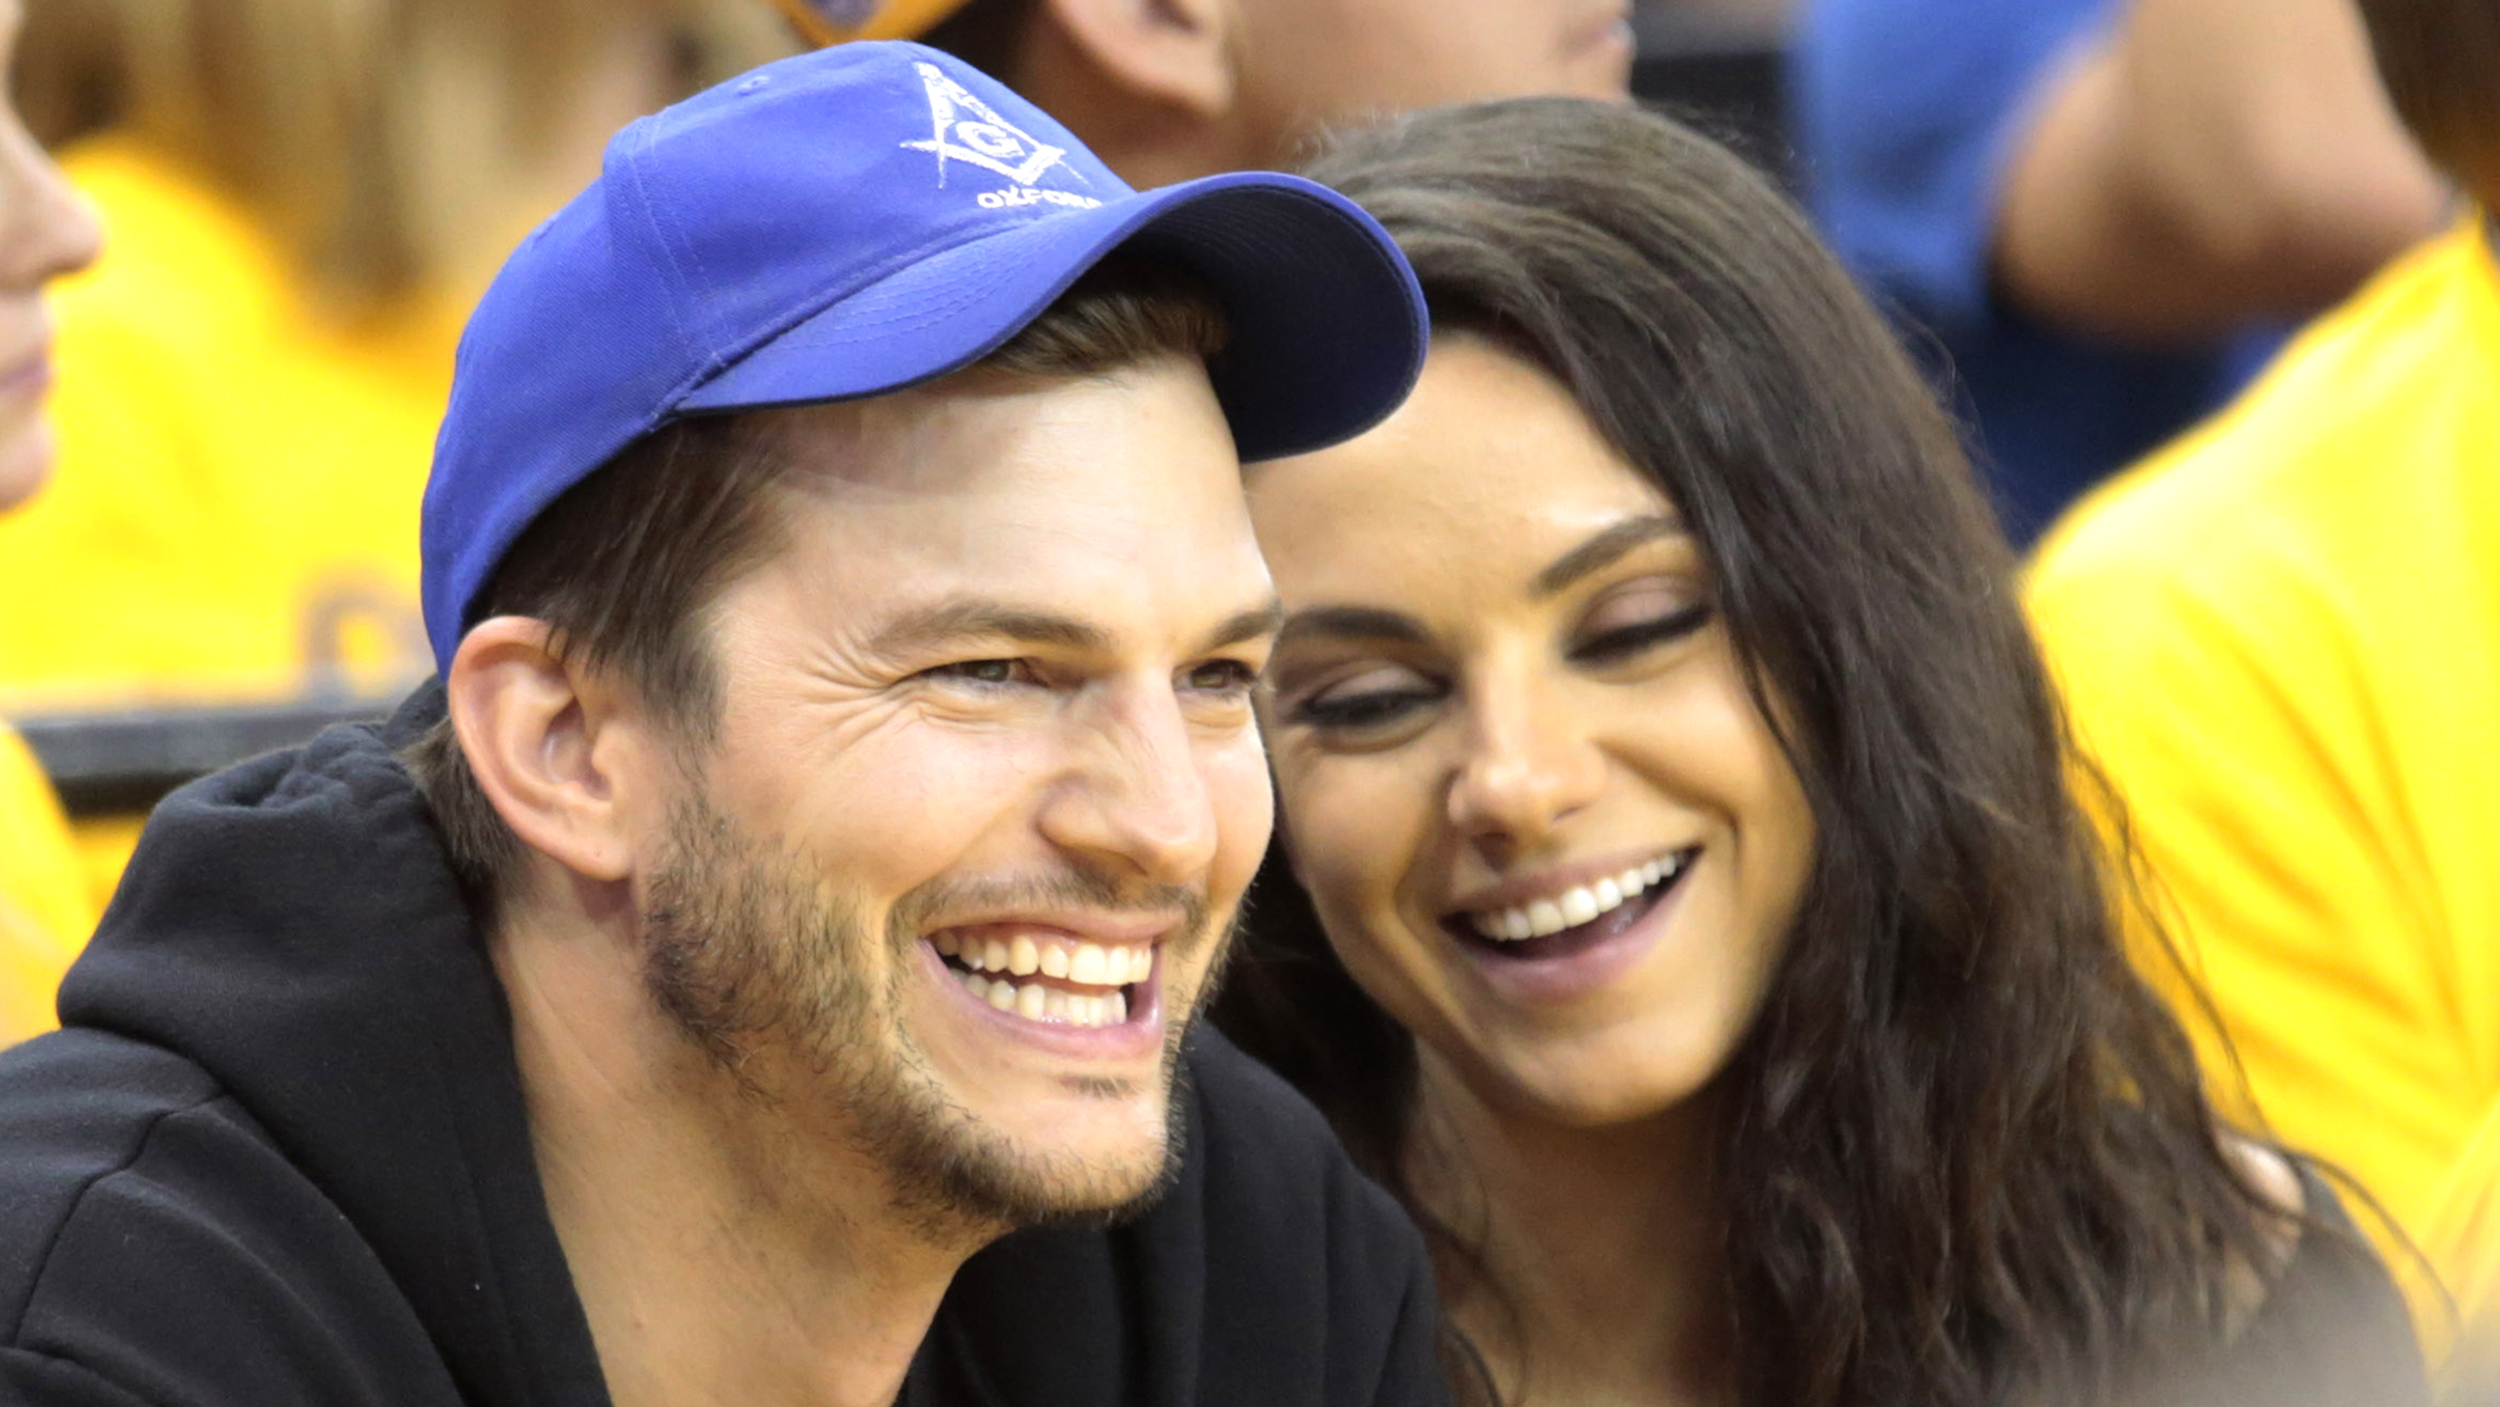 ashton kutcher dating mila Although mila kunis, 32, has known ashton kutcher, 38, since she was just 15 years old, she didn't think of her future husband in a romantic way until many years later — even though he was always a total hottie.